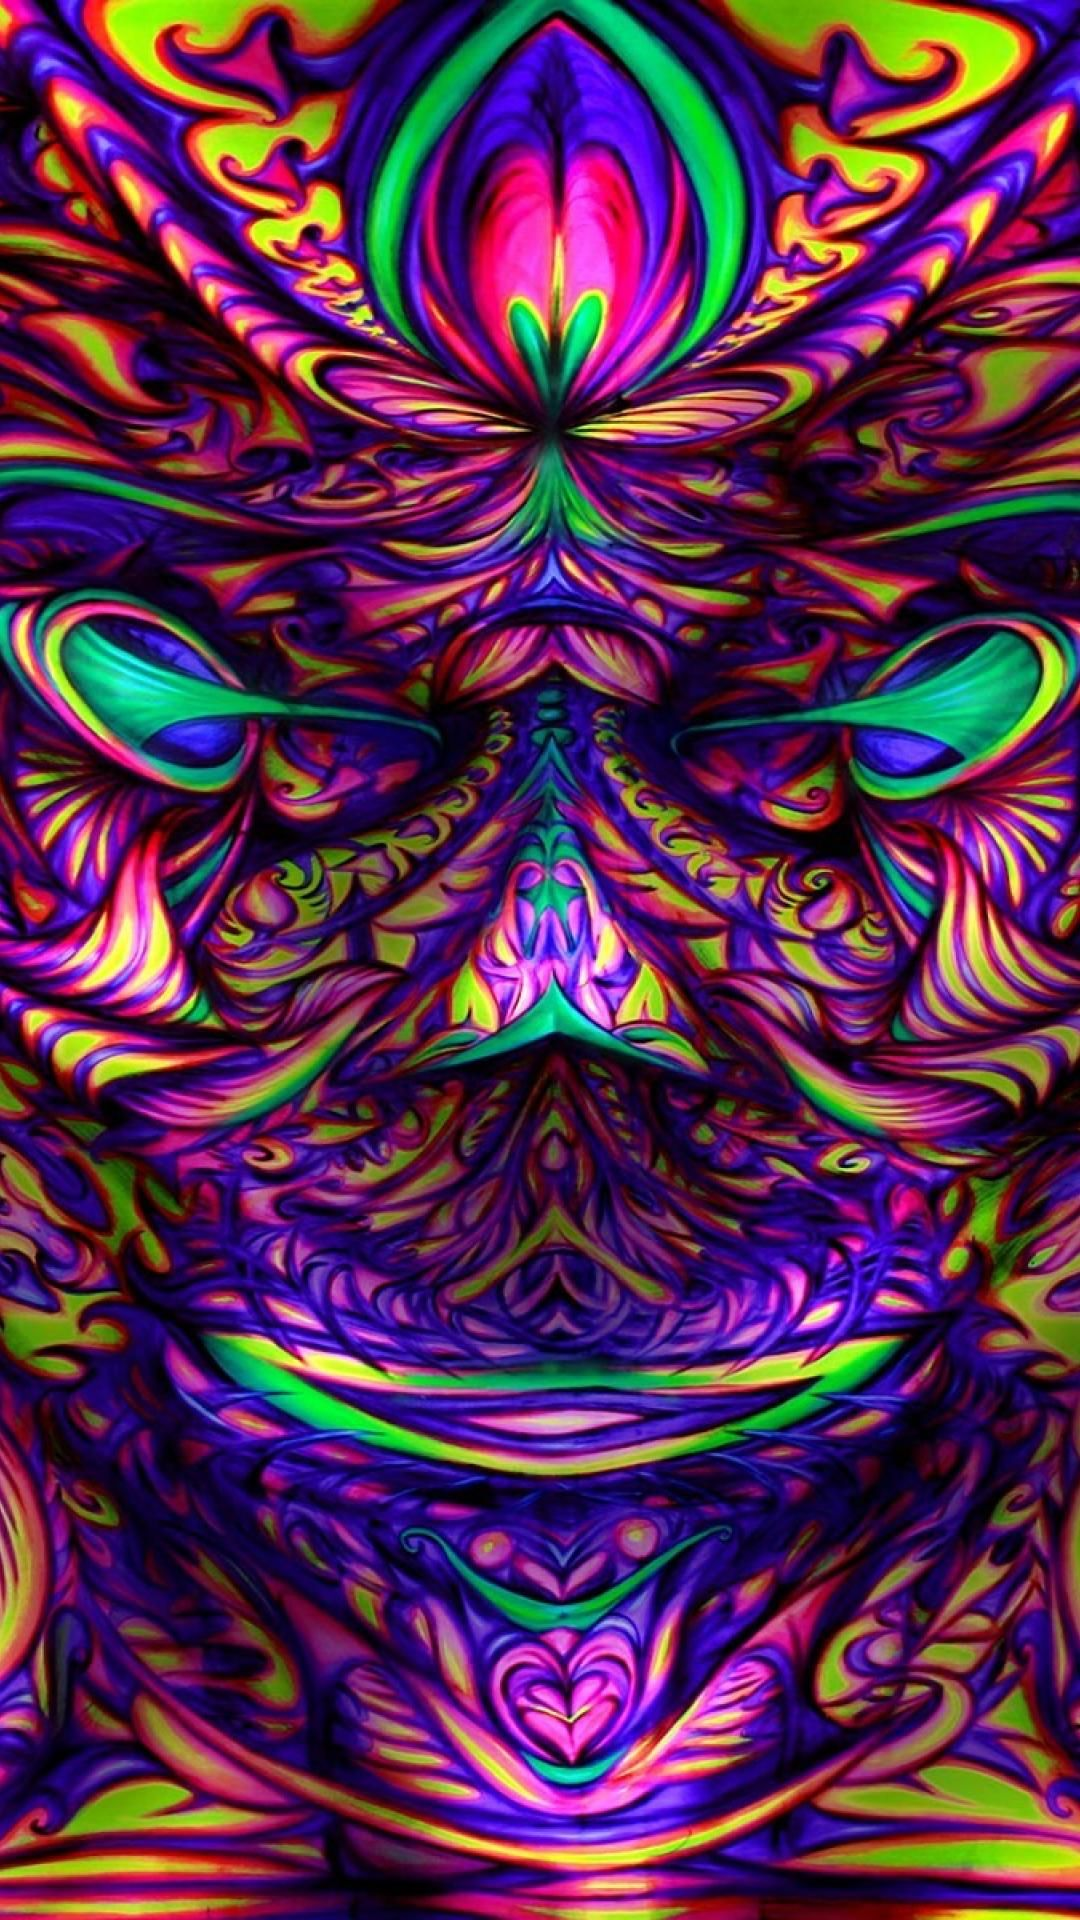 HDScreen Artwork colors psychedelic trippy desktop